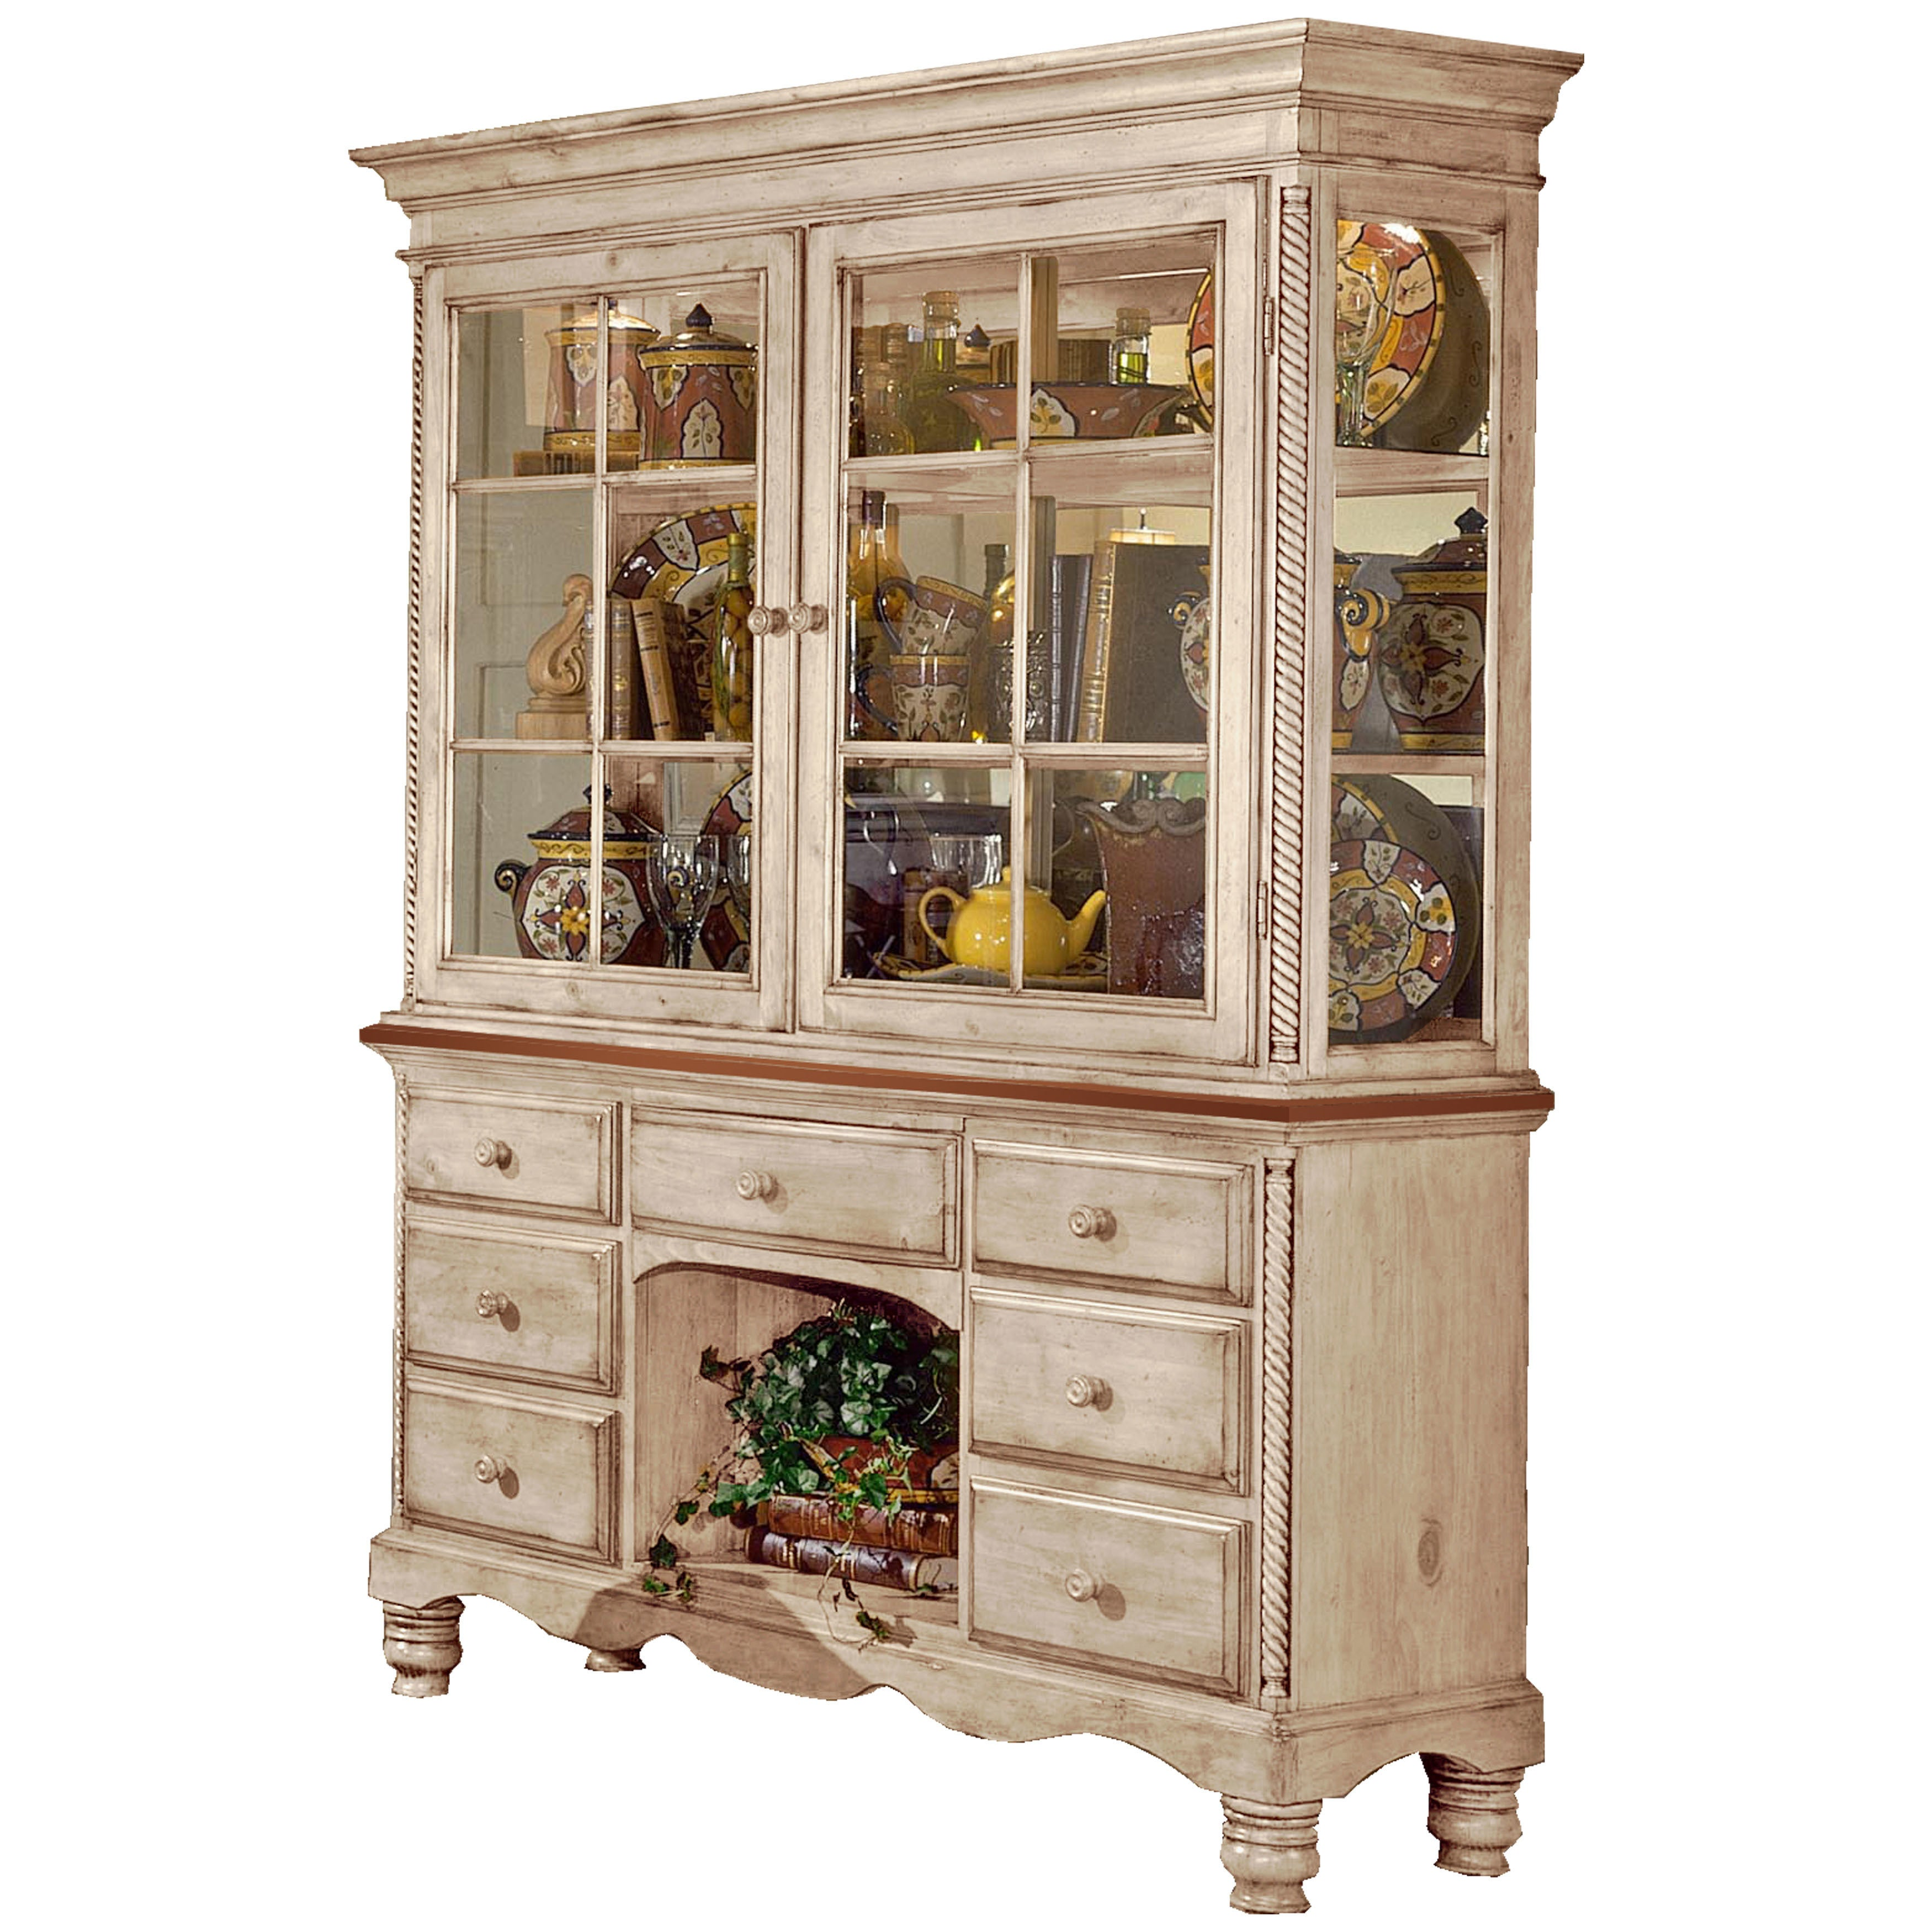 Shop hillsdale furniture wilshire antique white finish wood buffet and hutch on sale free shipping today overstock com 16295108